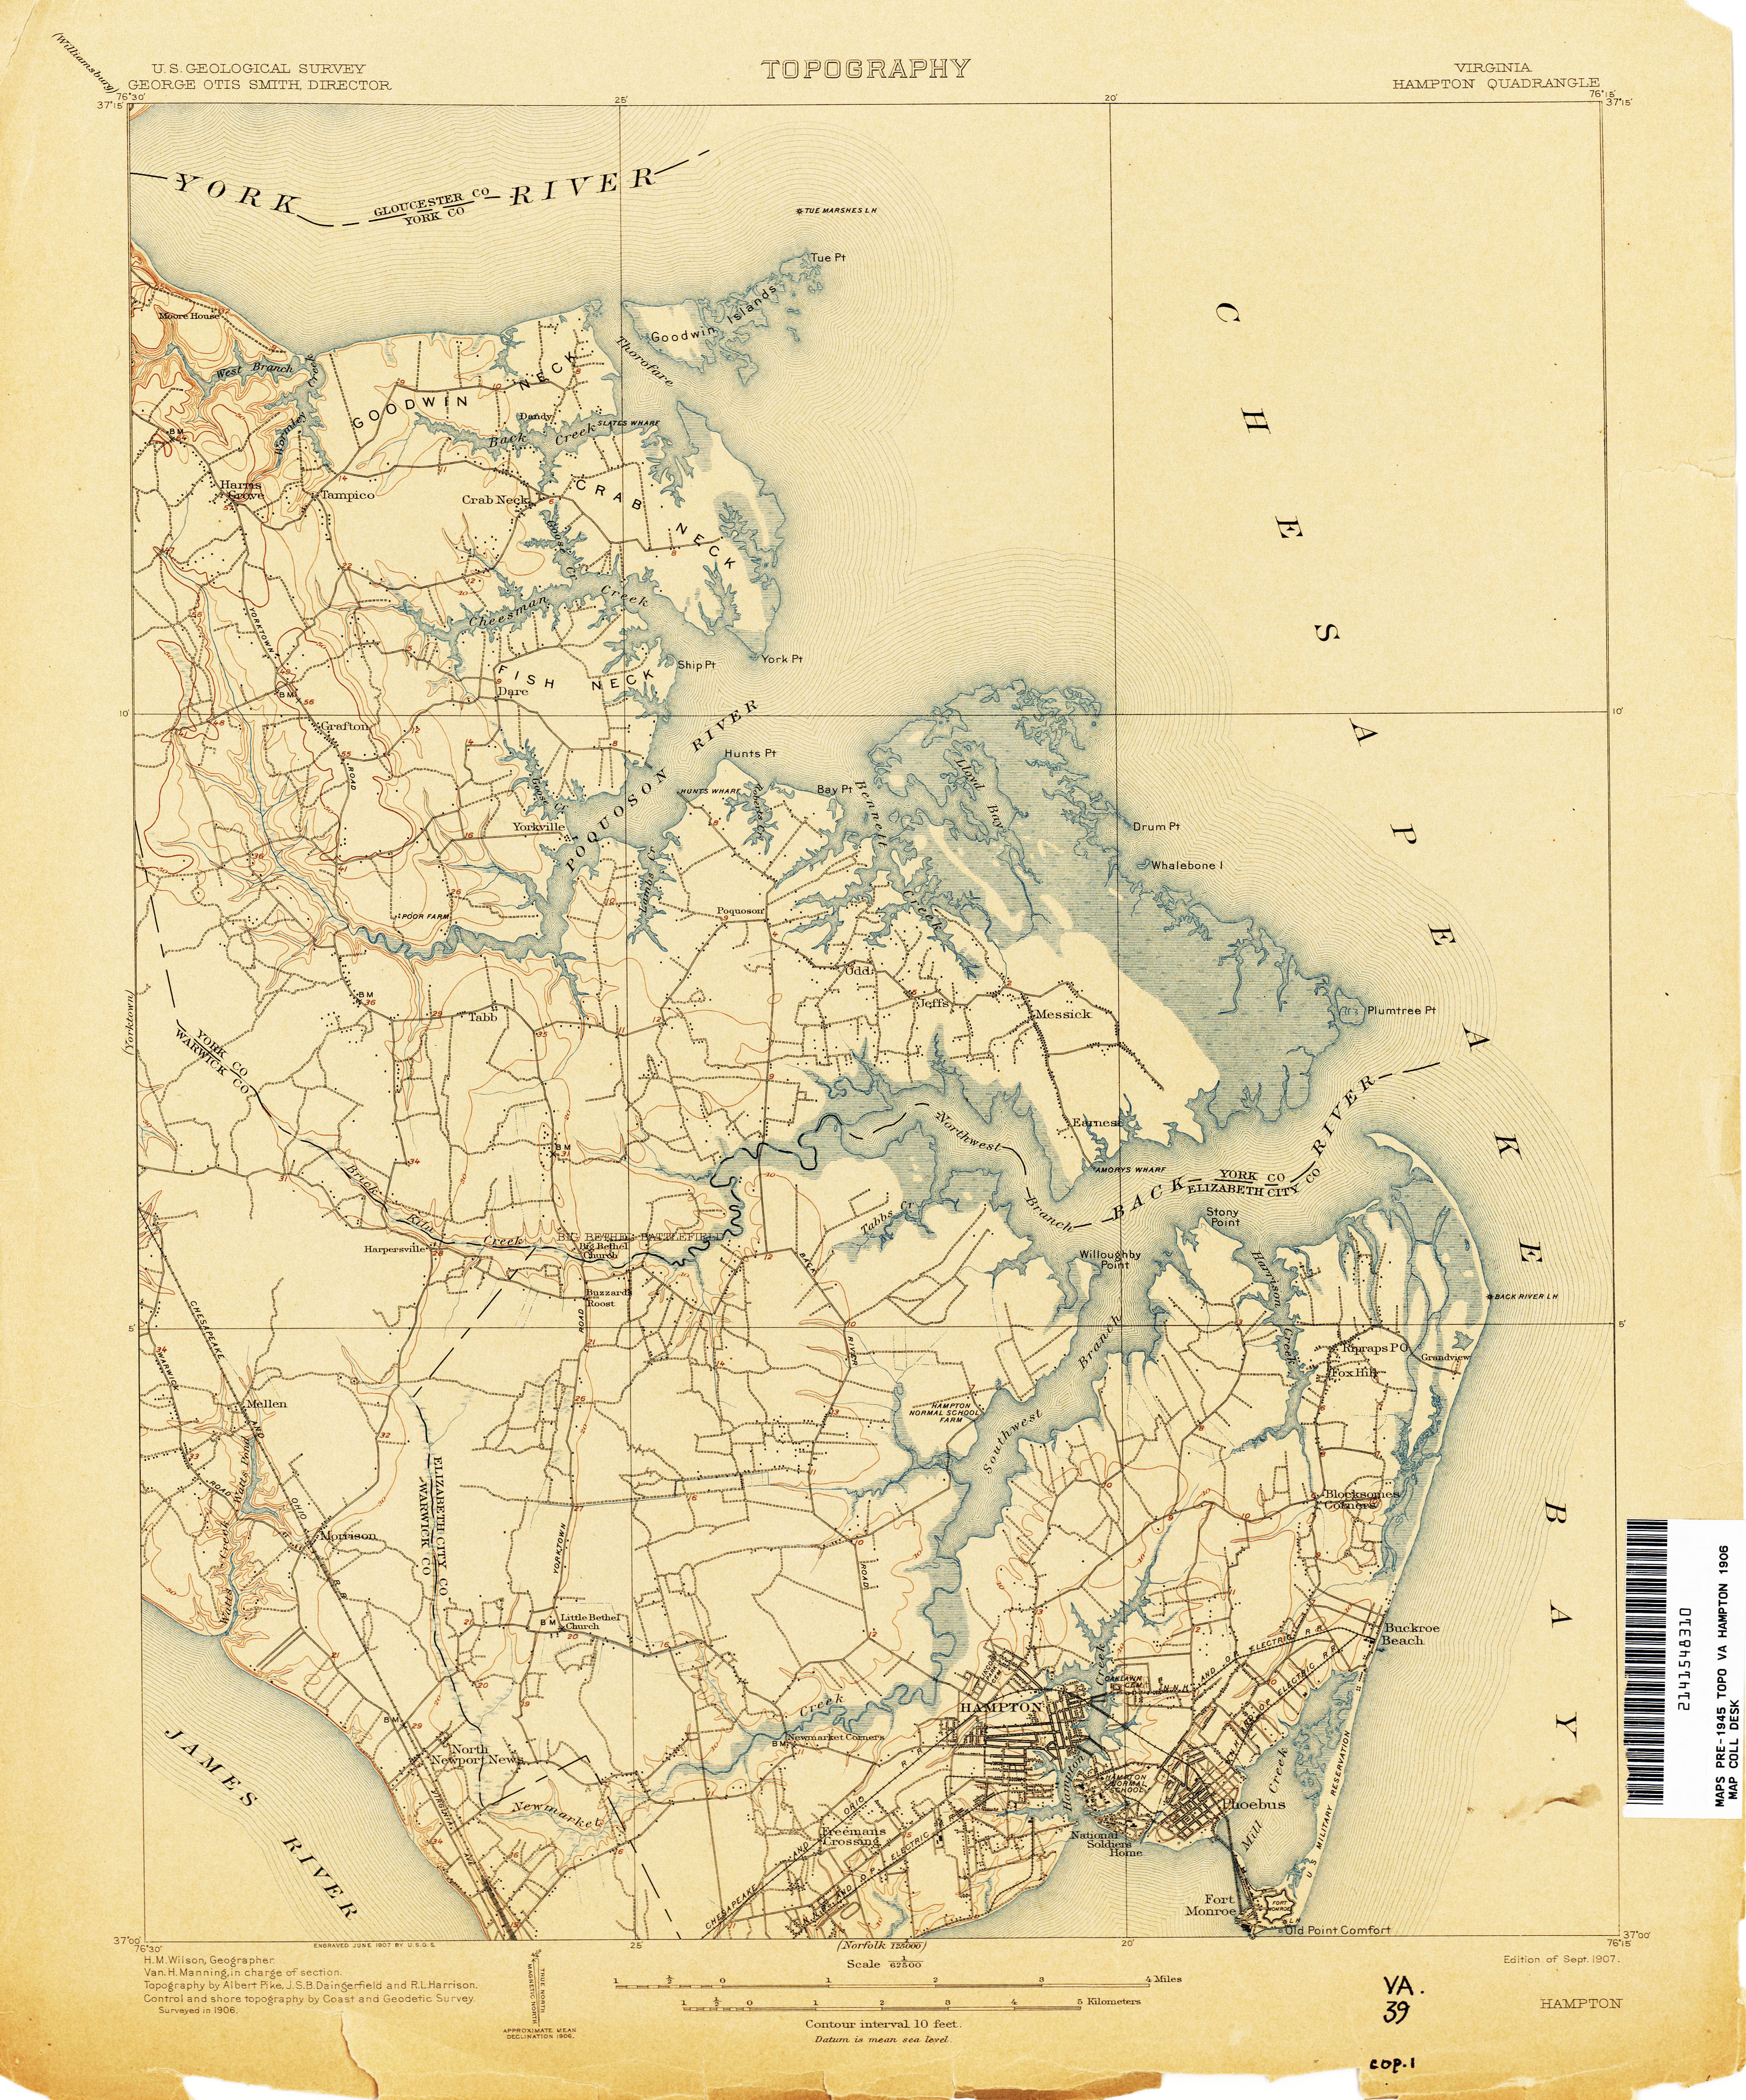 Gloucester Virginia Map.Virginia Historical Topographic Maps Perry Castaneda Map